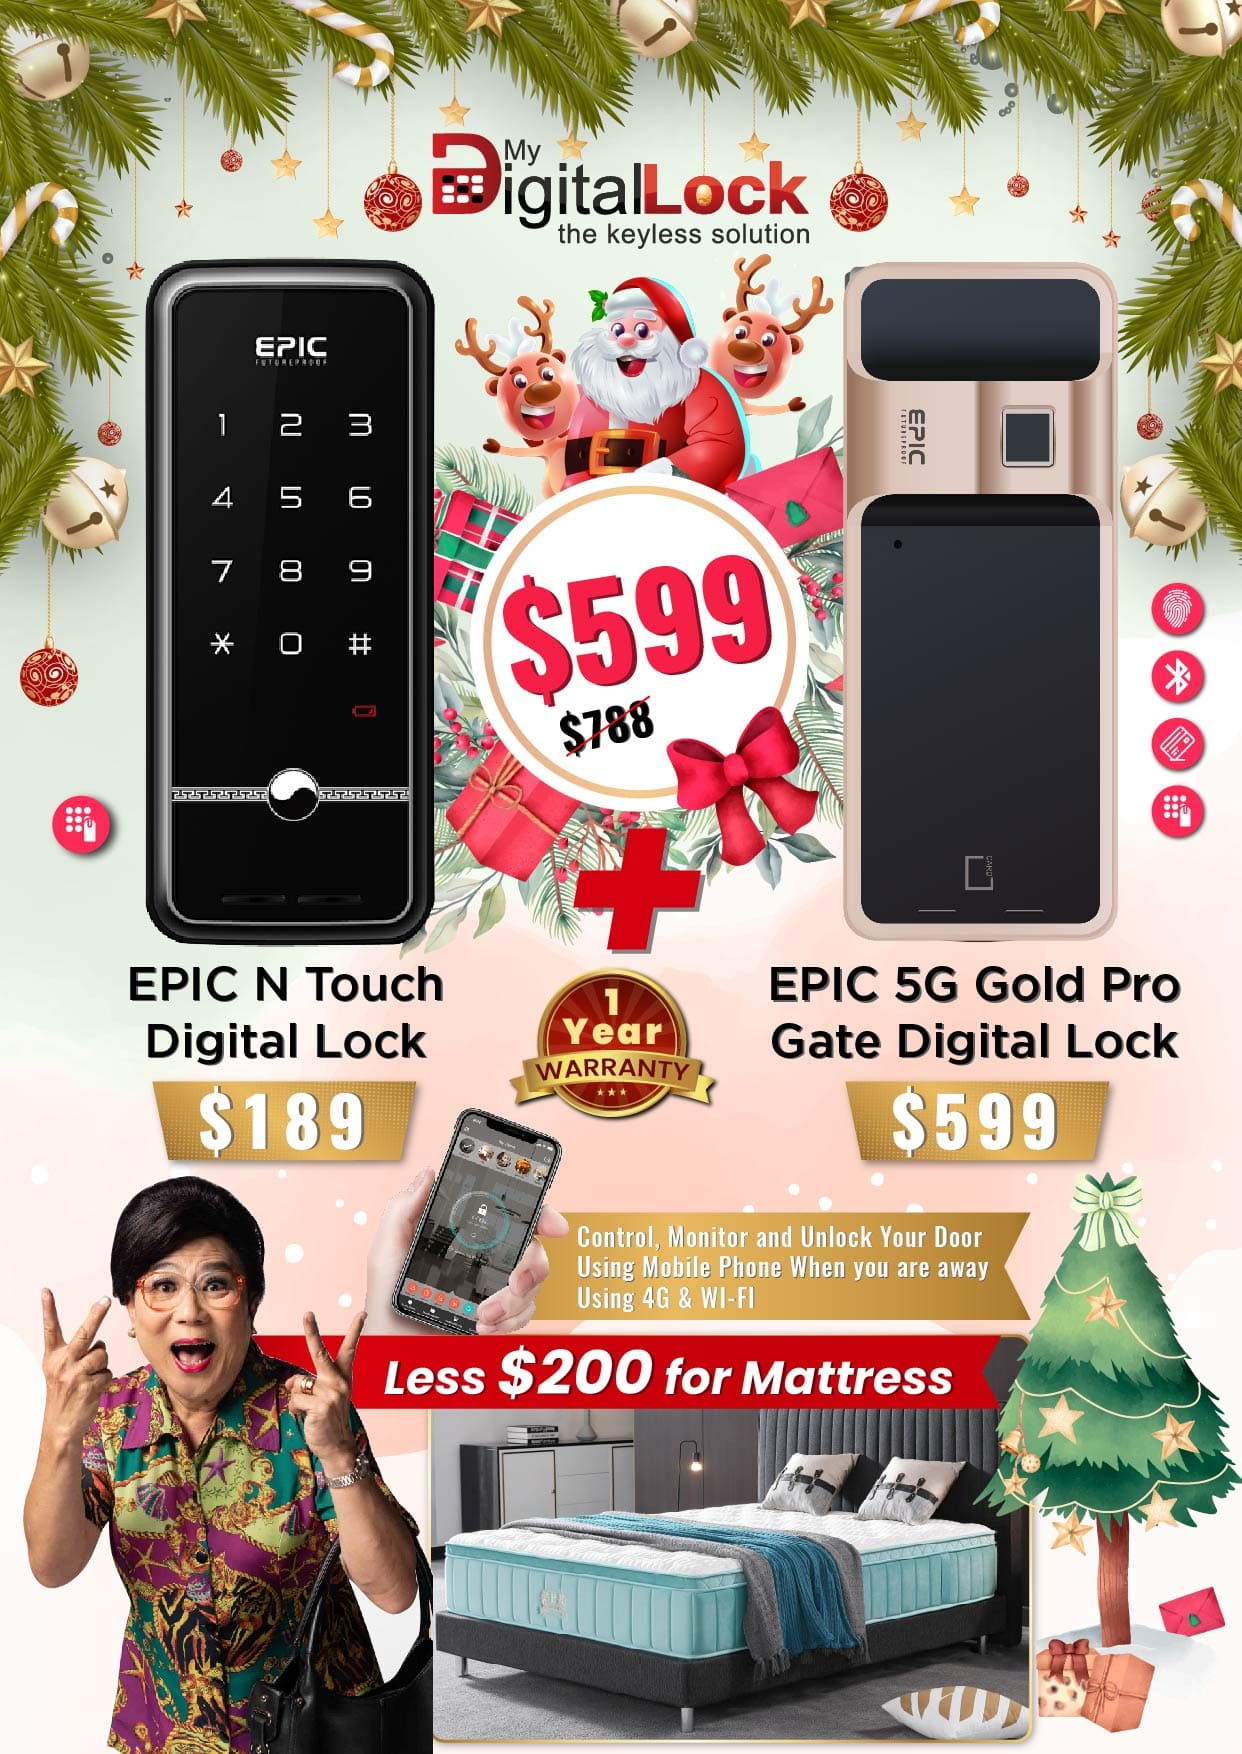 My Digital Lock EPIC N Touch and 5G Gold Pro Gate Digital Lock Christmas Promotion 2019